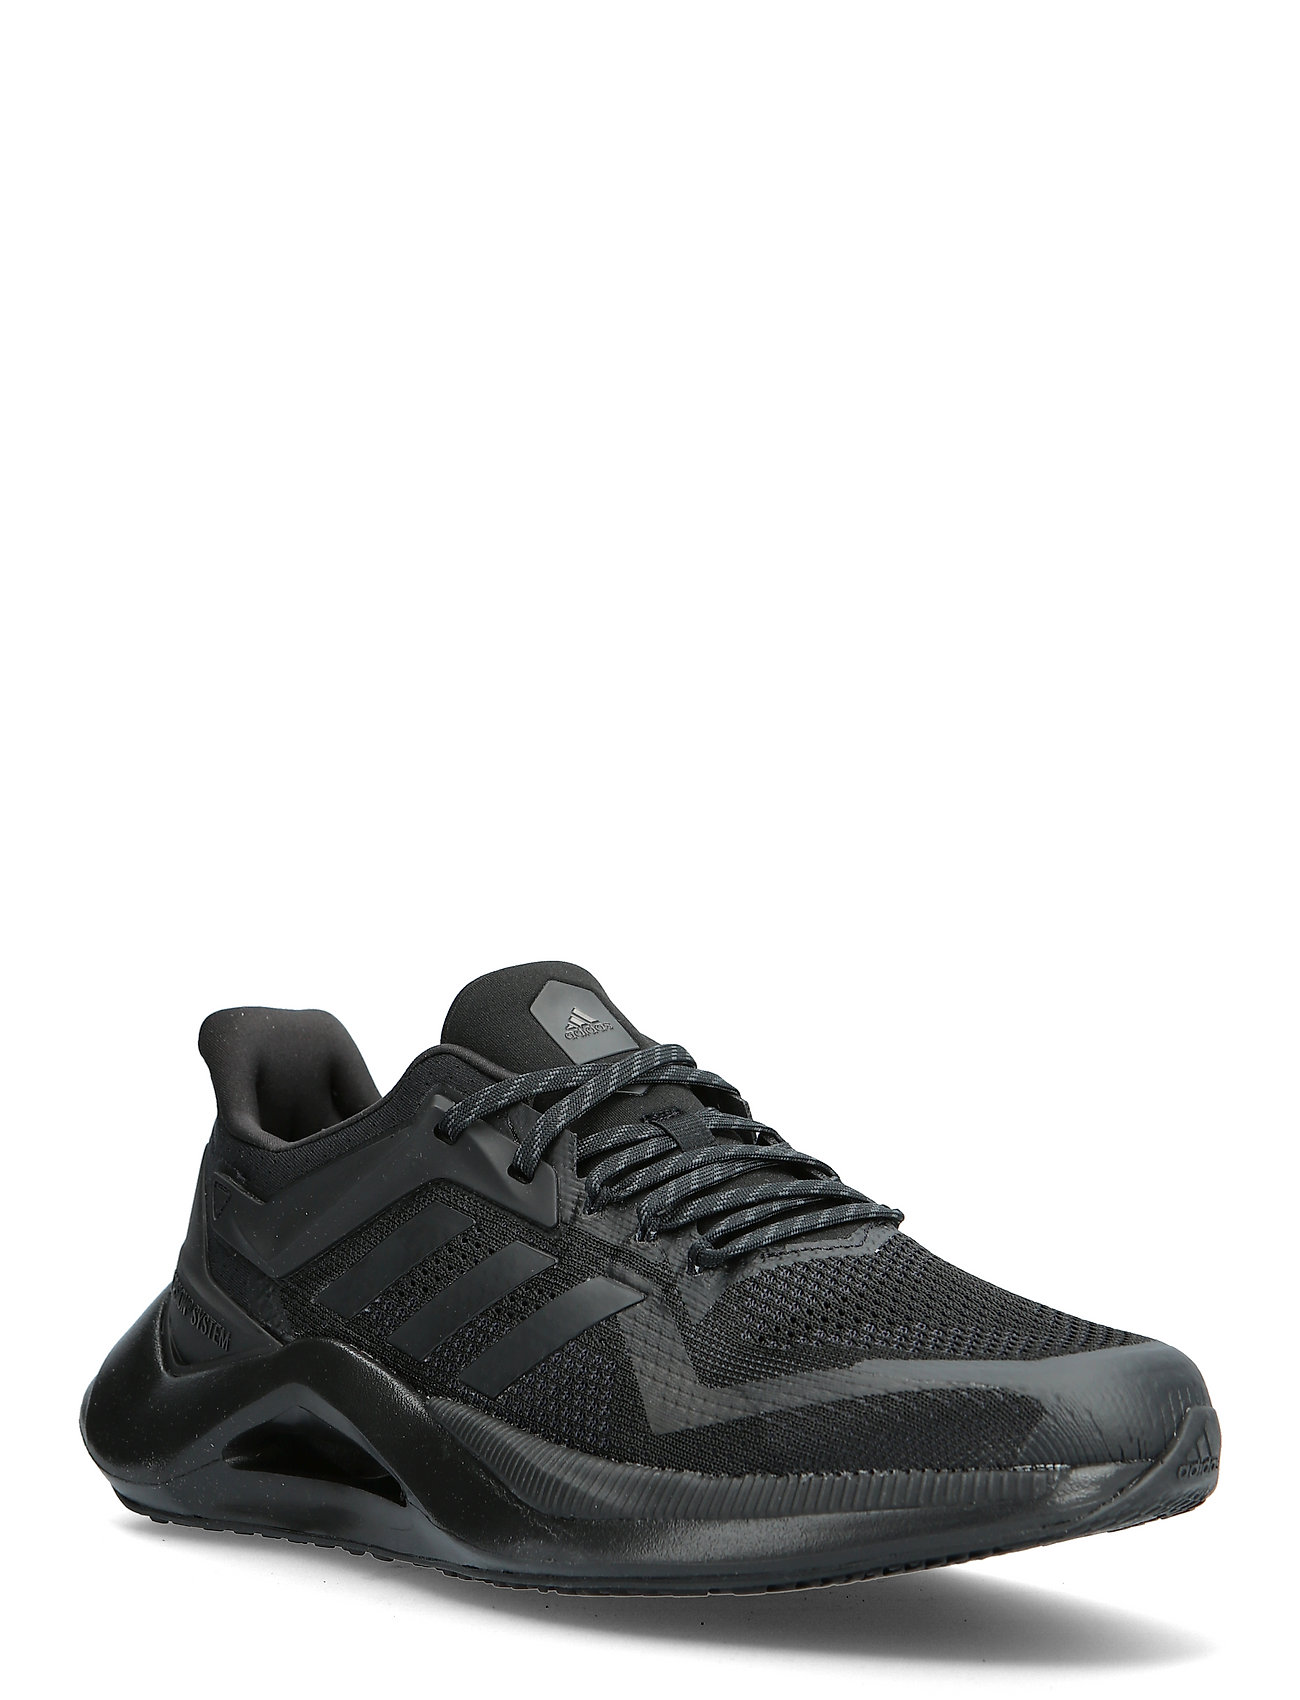 Alphatorsion 2.0 Shoes Sport Shoes Running Shoes Sort Adidas Performance